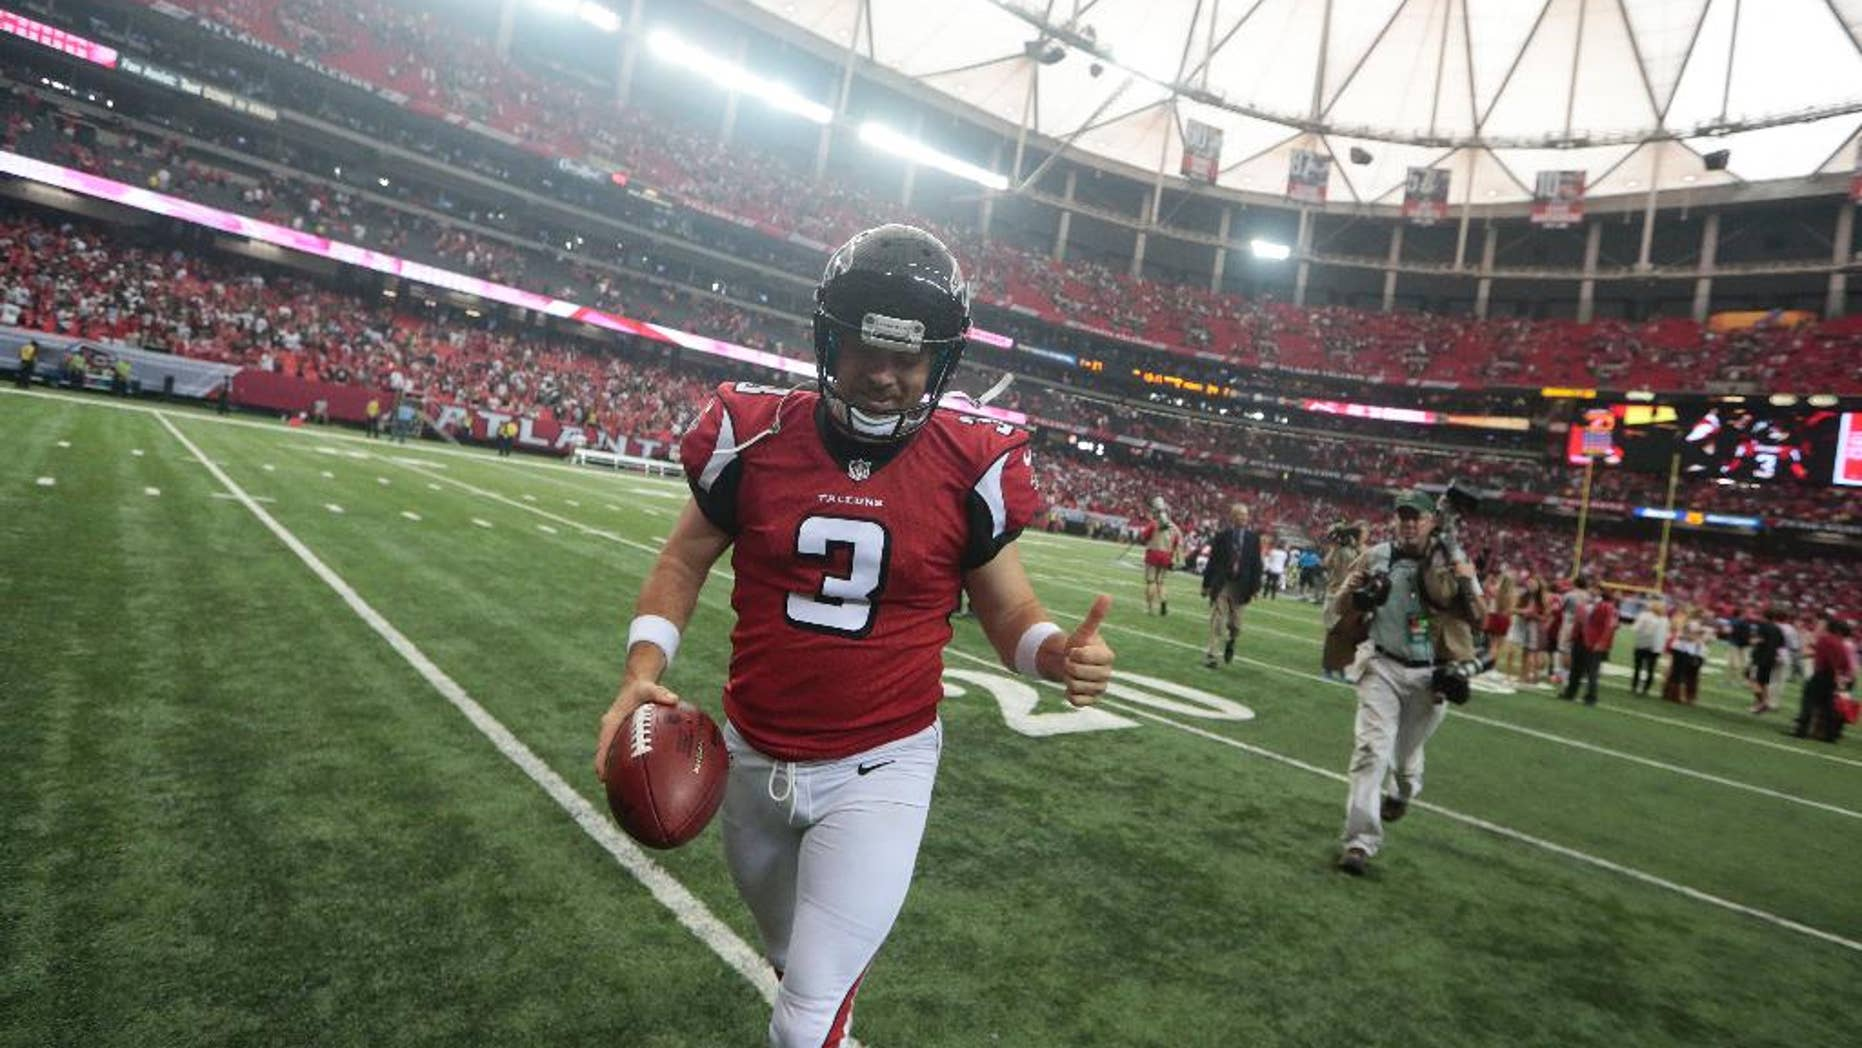 Atlanta Falcons kicker Matt Bryant (3) walks off the field after kicking the game-winning field goal against the New Orleans Saints during overtime of an NFL football game, Sunday, Sept. 7, 2014, in Atlanta. The Atlanta Falcons won in overtime 37-34. (AP Photo/John Bazemore)